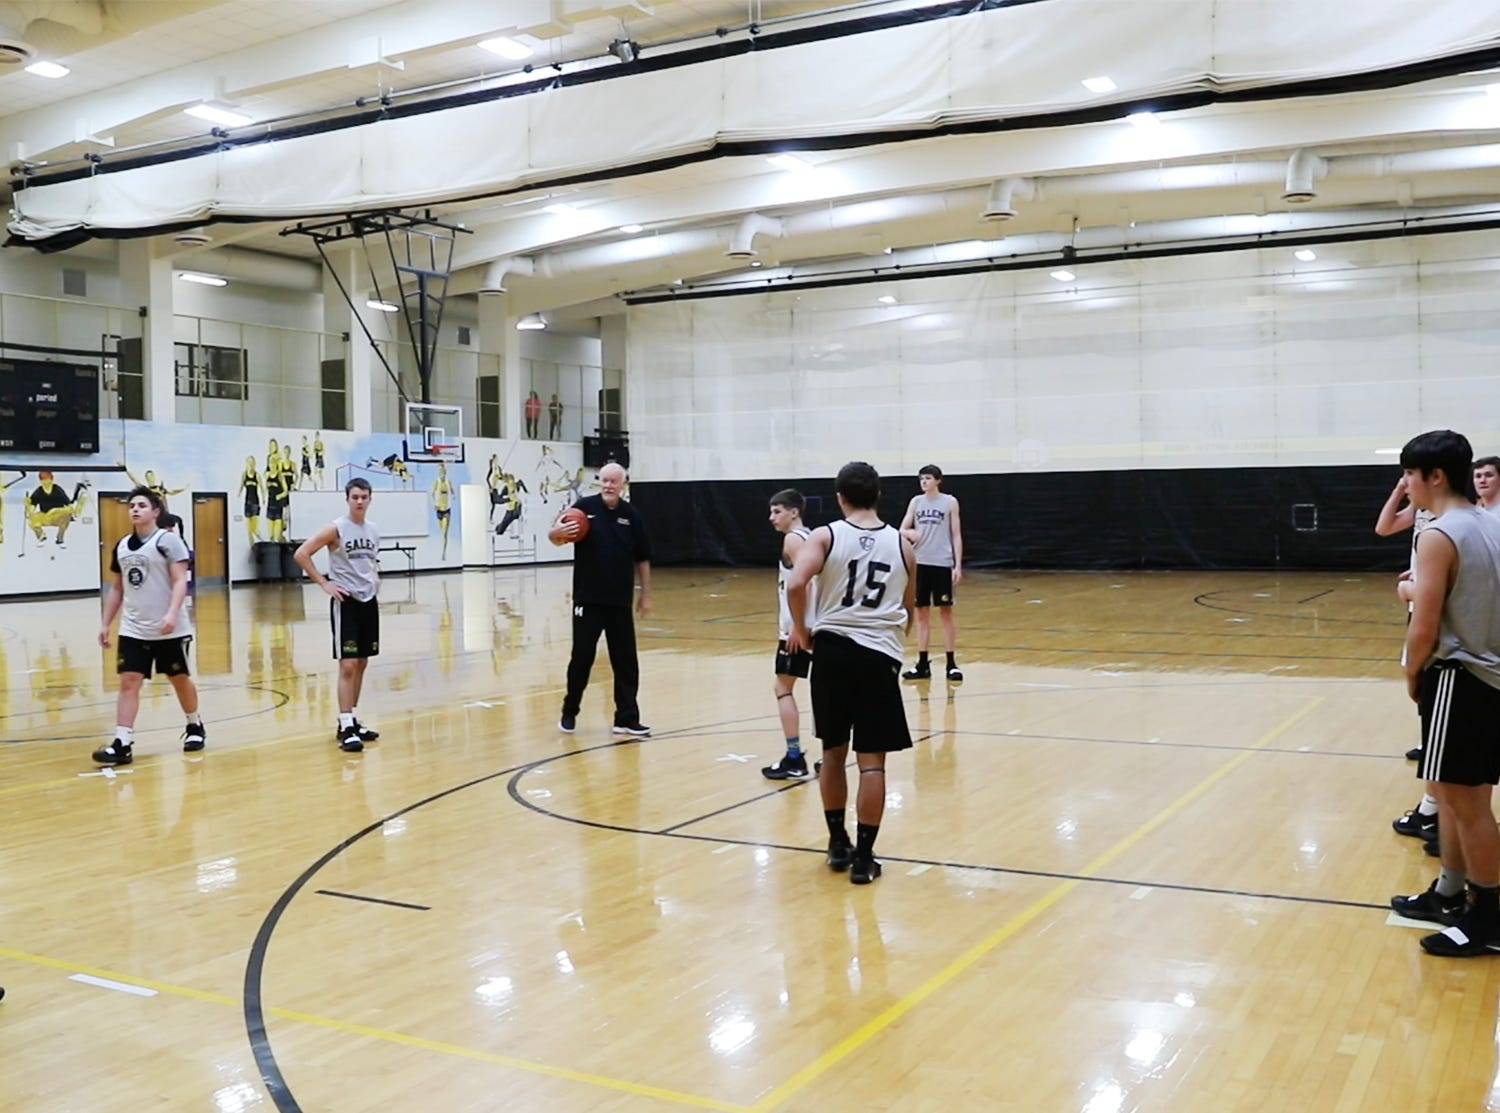 Salem High School Boys Basketball Coach Mike Brown, right, runs a team practice at Salem High School in Salem Ind. on Tuesday, Jan. 23, 2019. His step son Jalen Pigg, who has helped him with coaching for yers, was born with Down Syndrome and is now battling a form of leukemia but has a lot of support from the team.